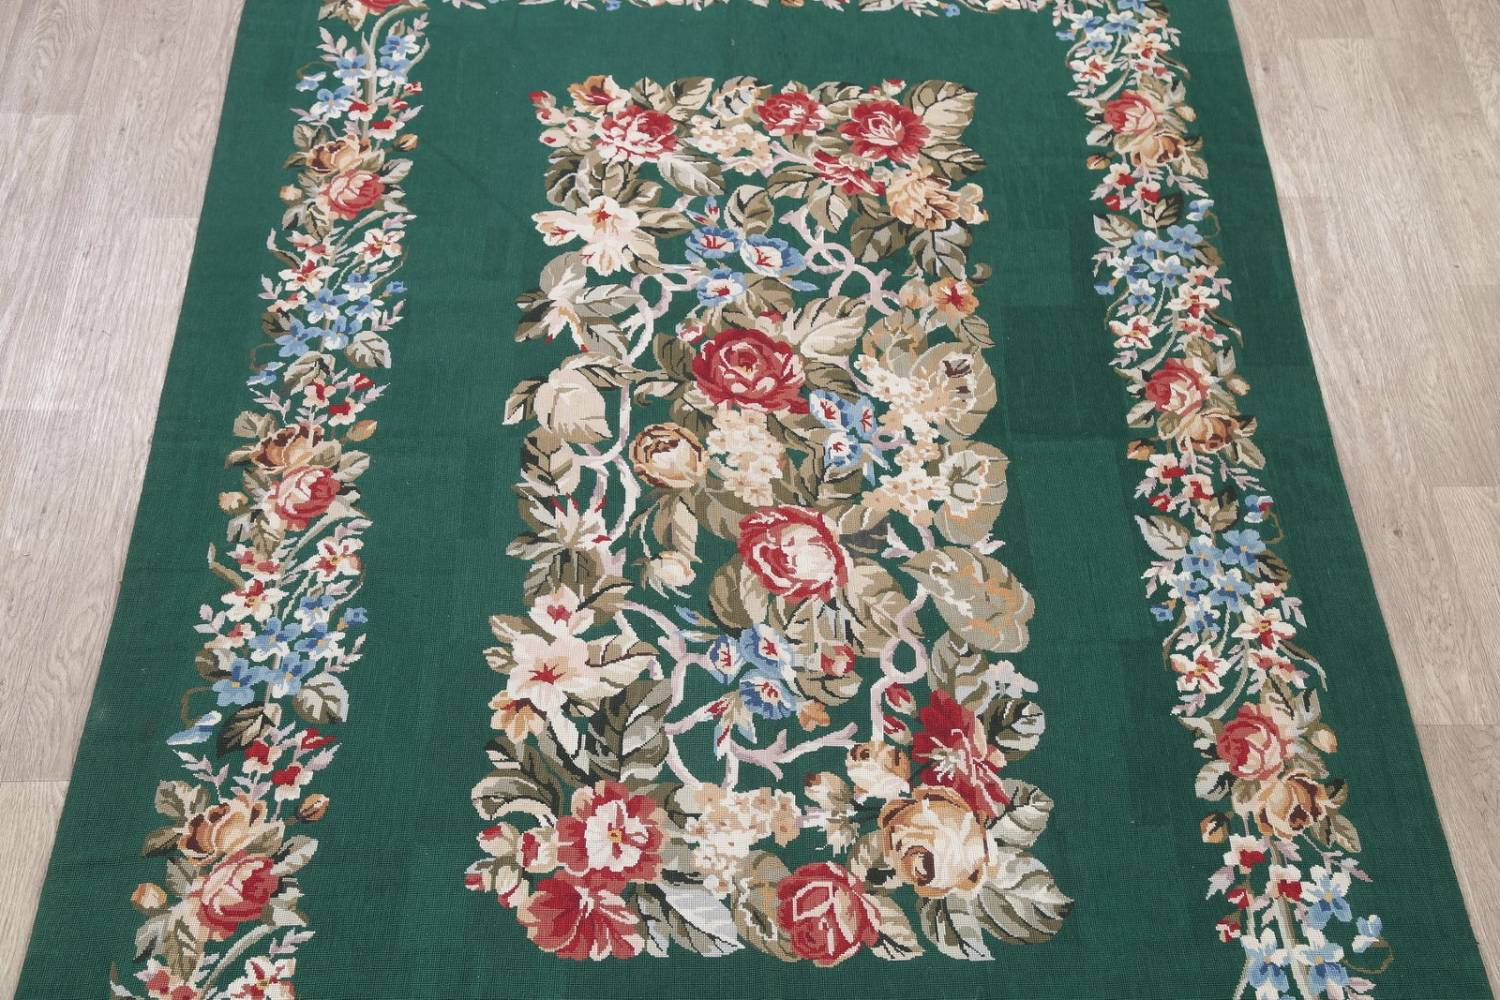 Floral Green Aubusson Chinese Oriental Hand-Woven Area Rug Wool 6x9 image 3